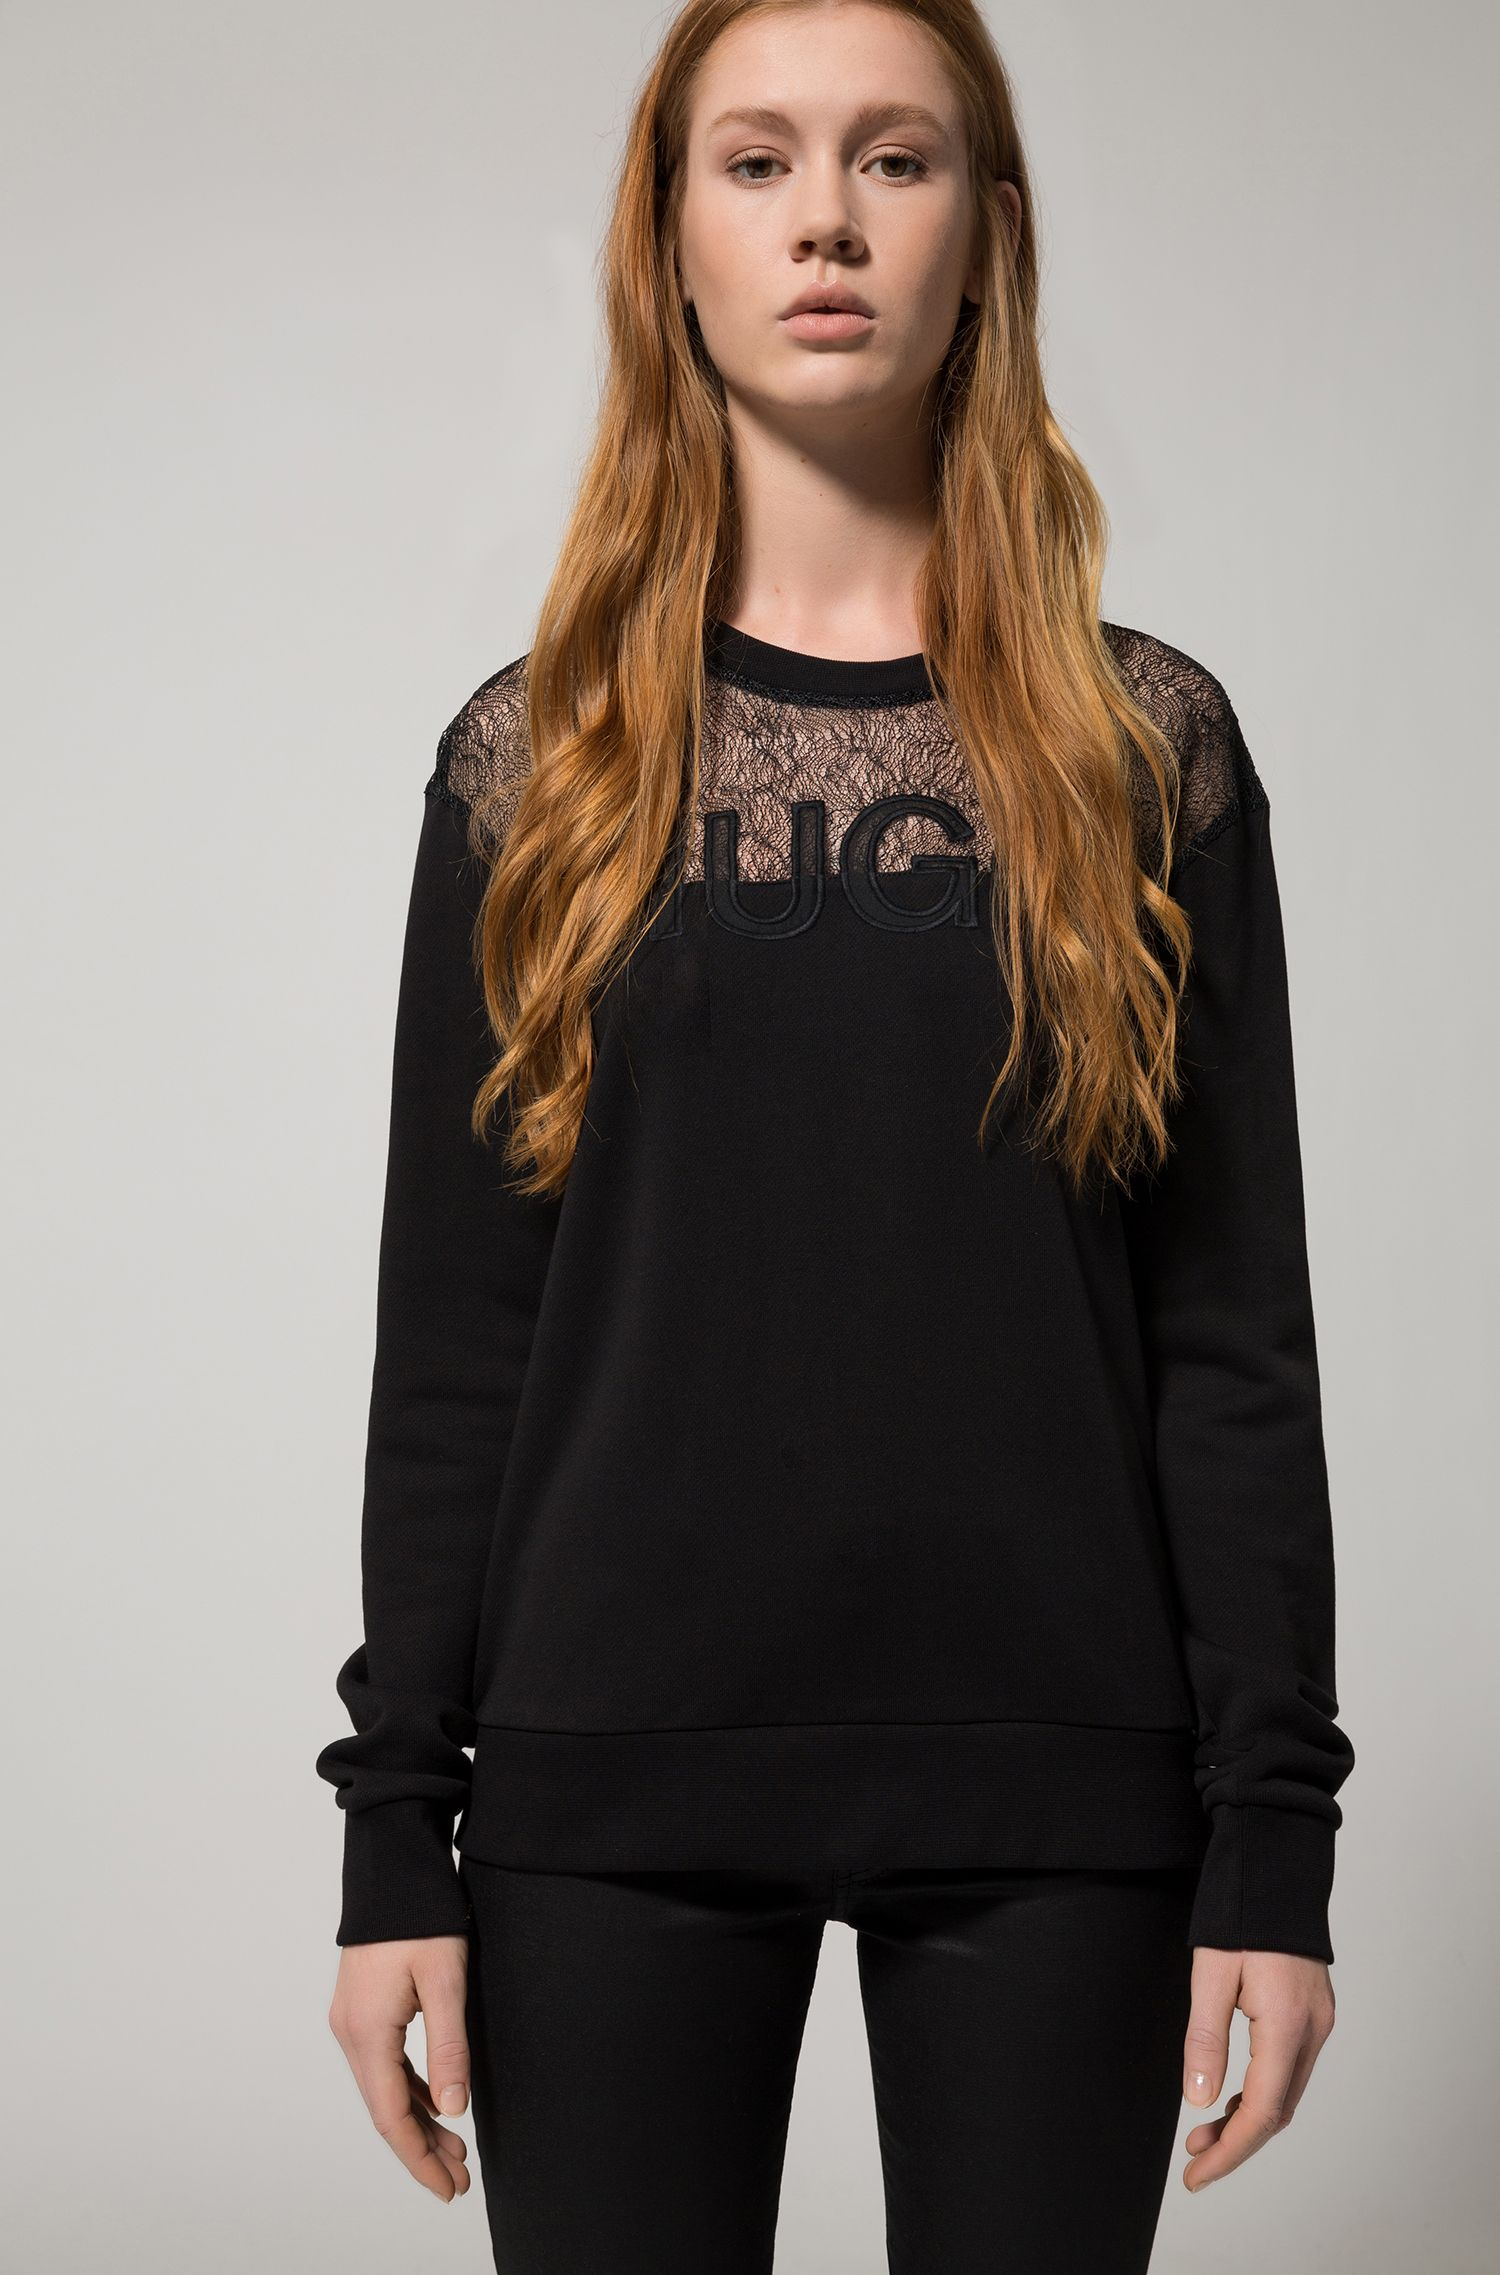 Cotton-blend logo sweater with lace yoke